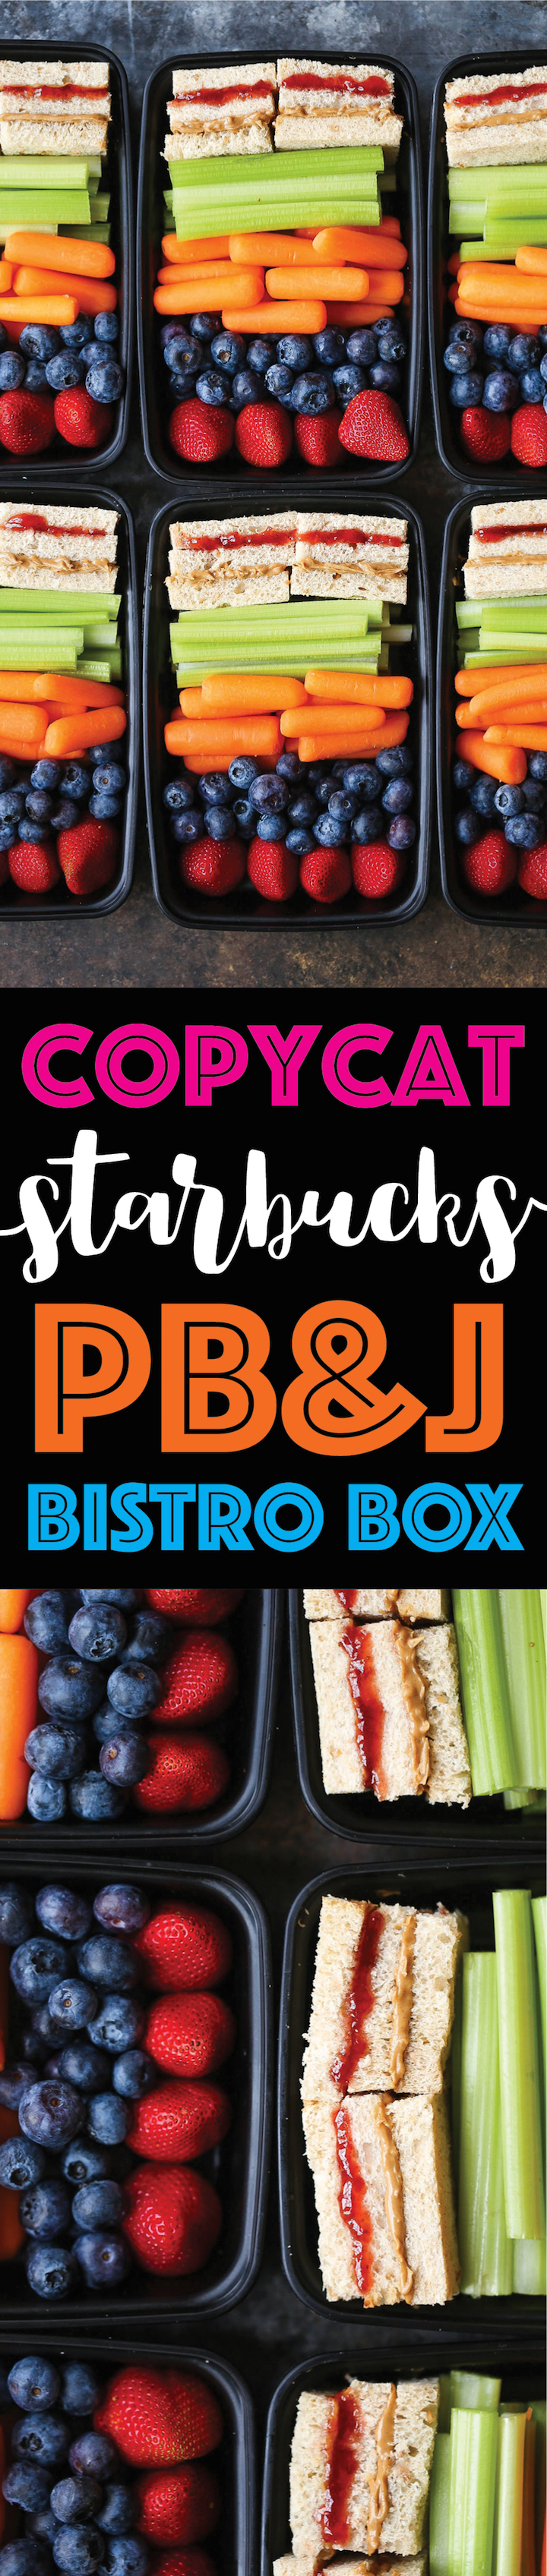 Copycat Starbucks PB&J Bistro Box - Save money and make your own meal prep boxes with everyone's favorite peanut butter and jelly whole wheat sandwiches!